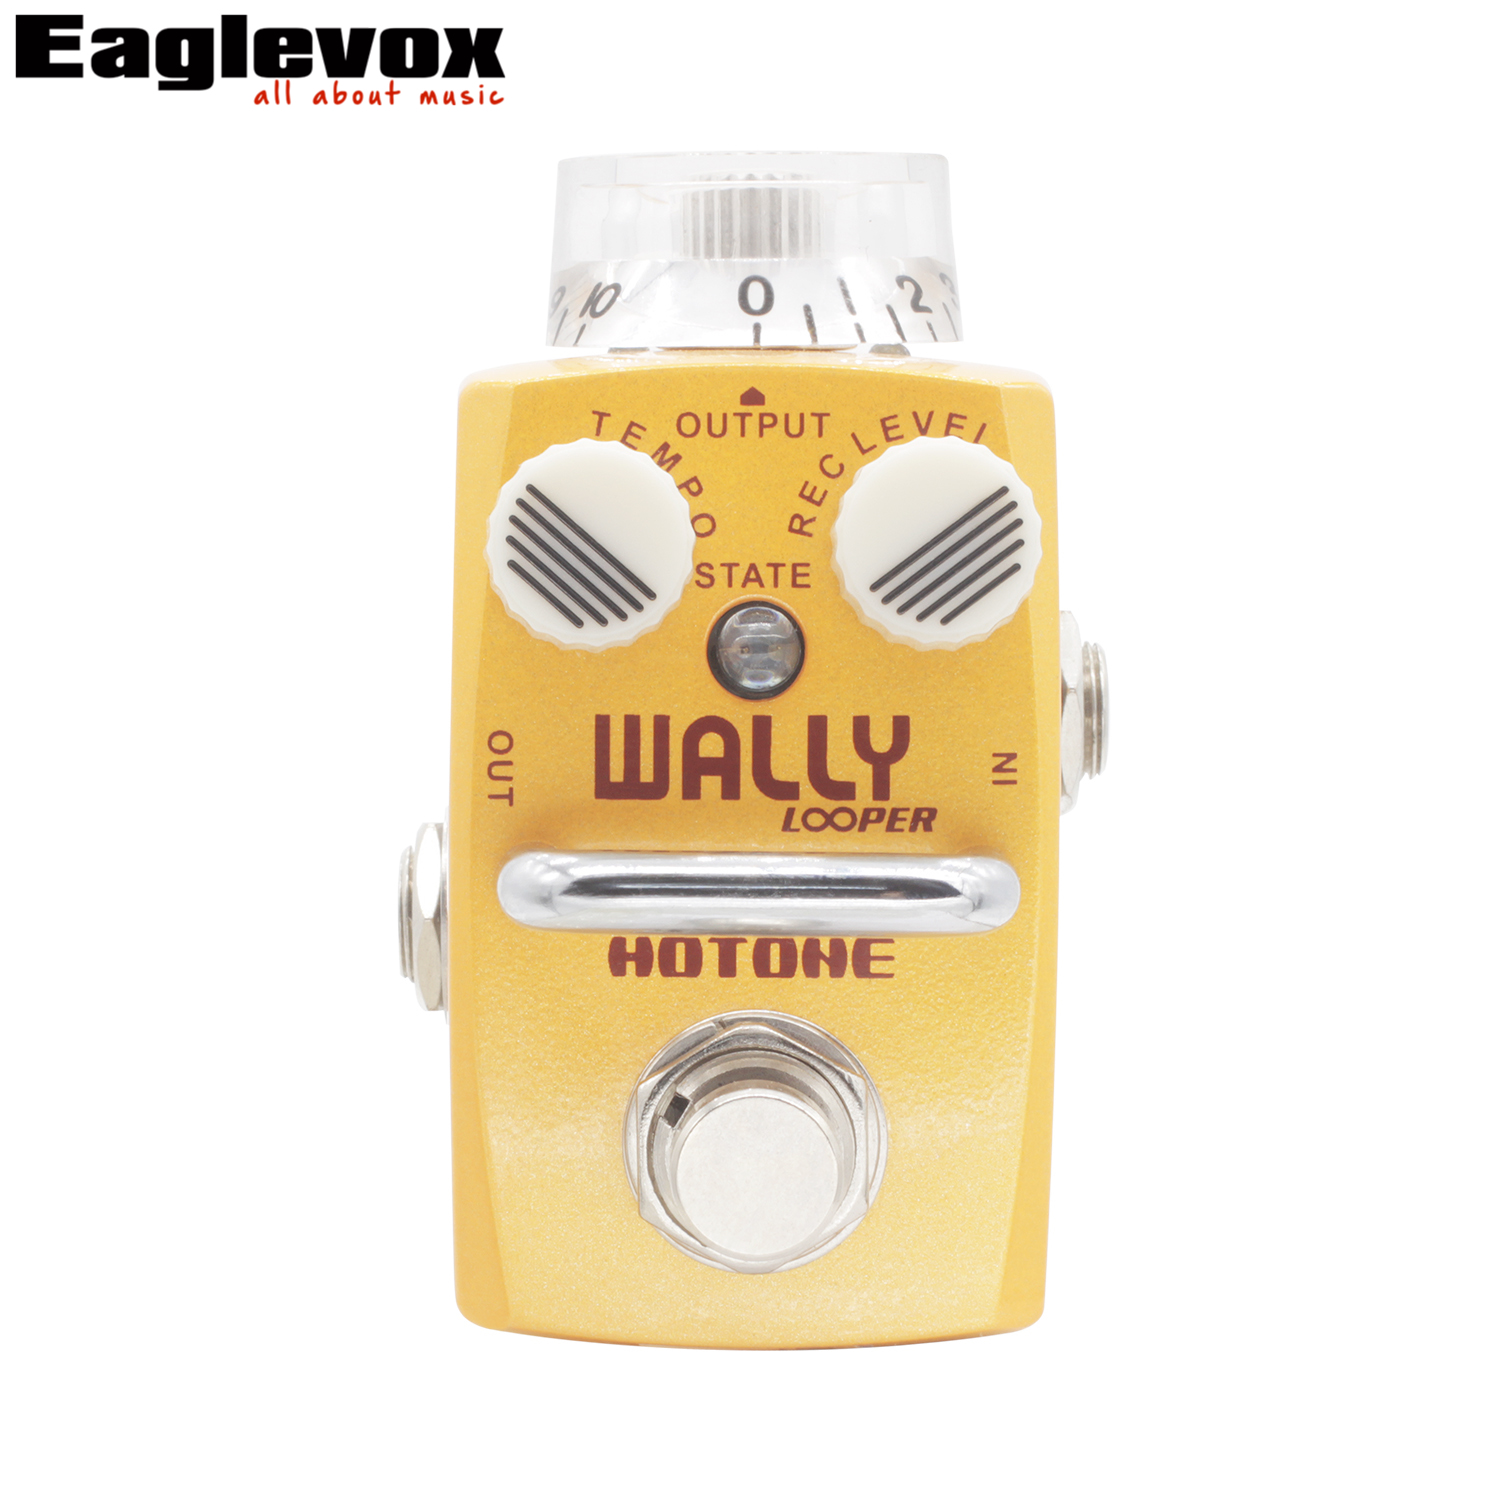 Hotone Wally Looper Mini Loop Station Overdub Record Electric Guitar Effect Pedal wally overdub record smart LED lights инструмент для наполнения маринадом joseph joseph flavourbud